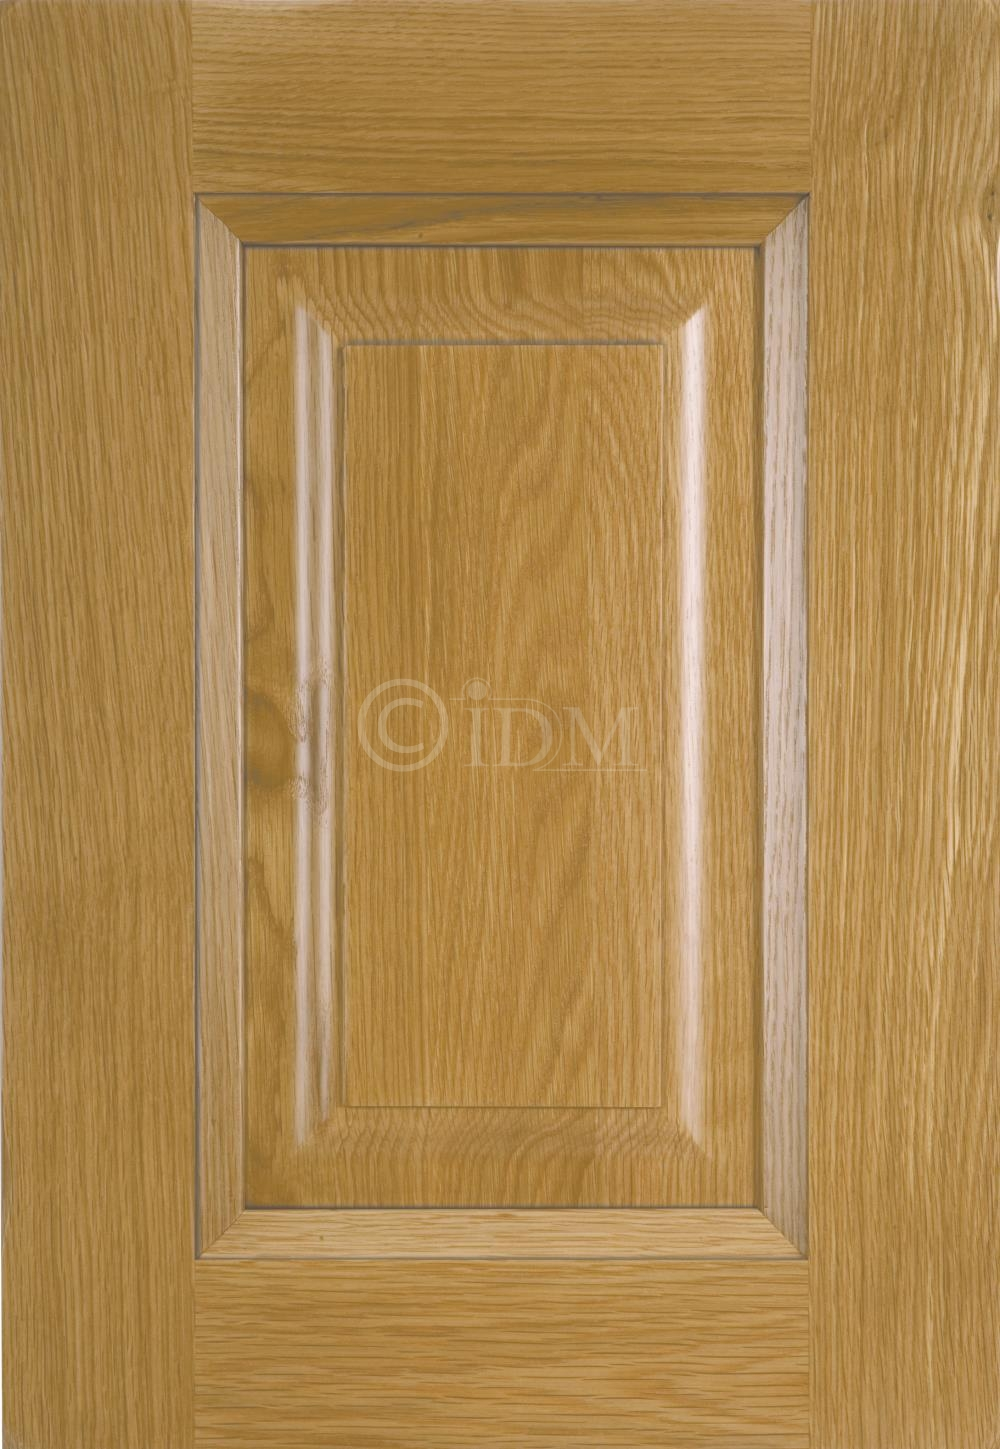 Kitchen cabinet doors northern ireland - Irelands Largest Range Of 100 Solid Wood Cabinet Doors Solid Wood Kitchen Doors Made To Measure In Northern Ireland By In Doors Manufacturing